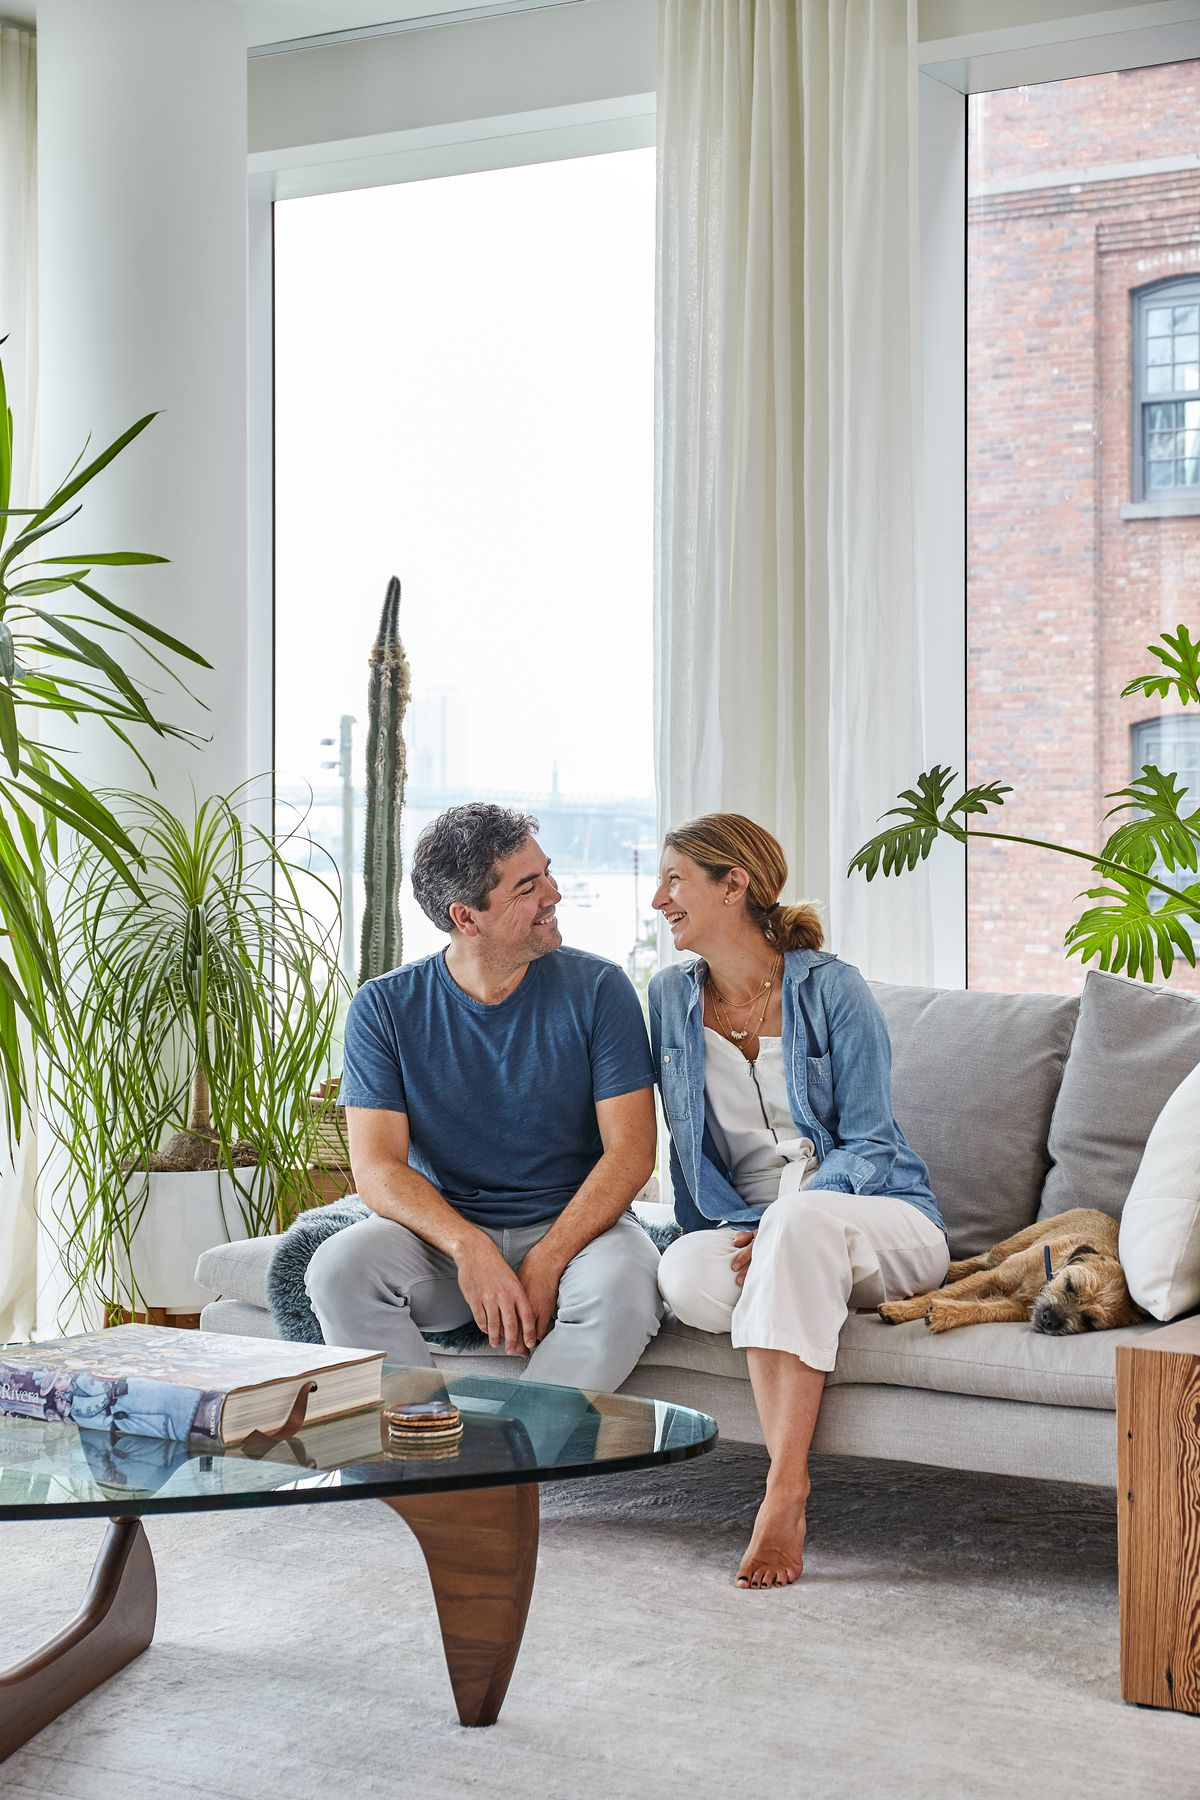 A man and a woman sit on a couch smiling and looking at each other. In the foreground is a glass table. In the background are plants in planters and floor to ceiling windows.